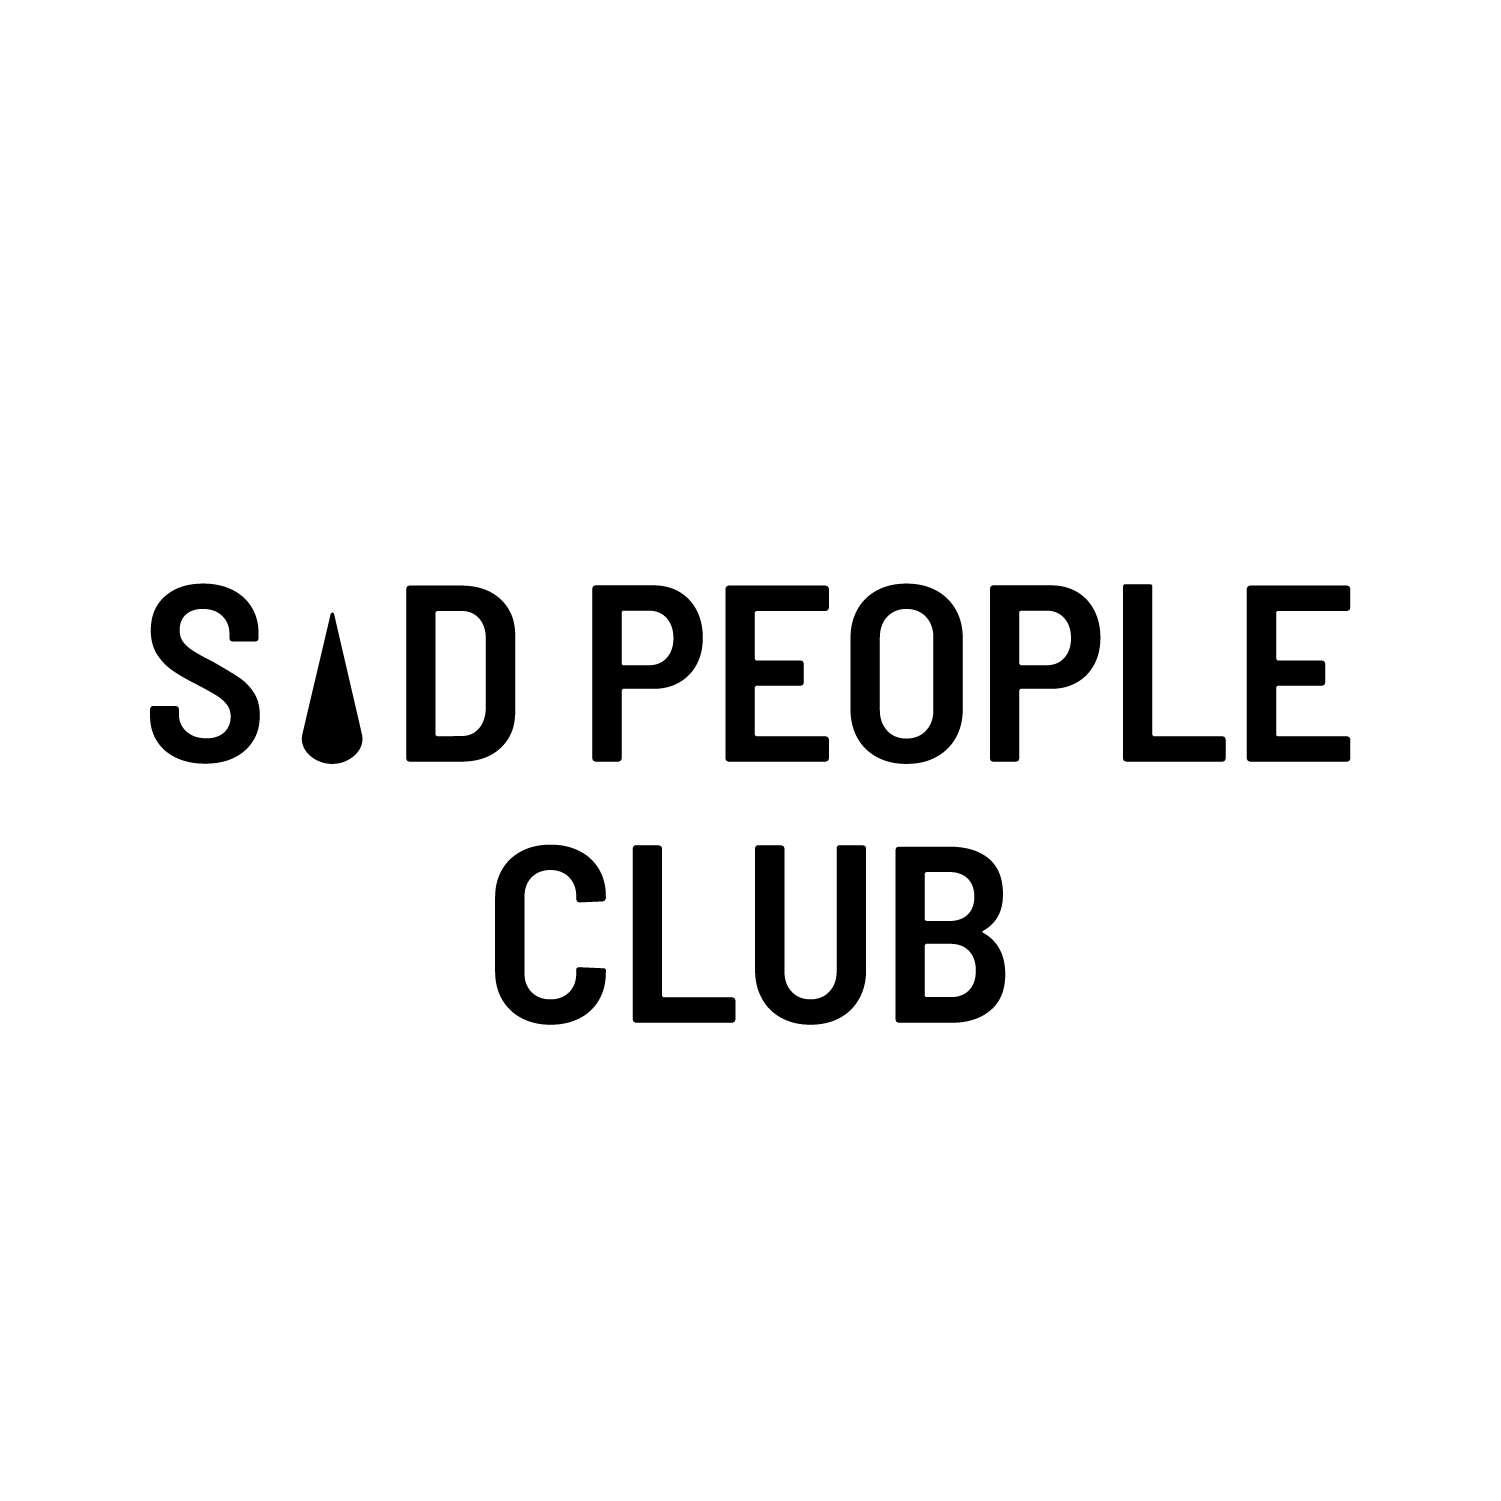 Sad People Club